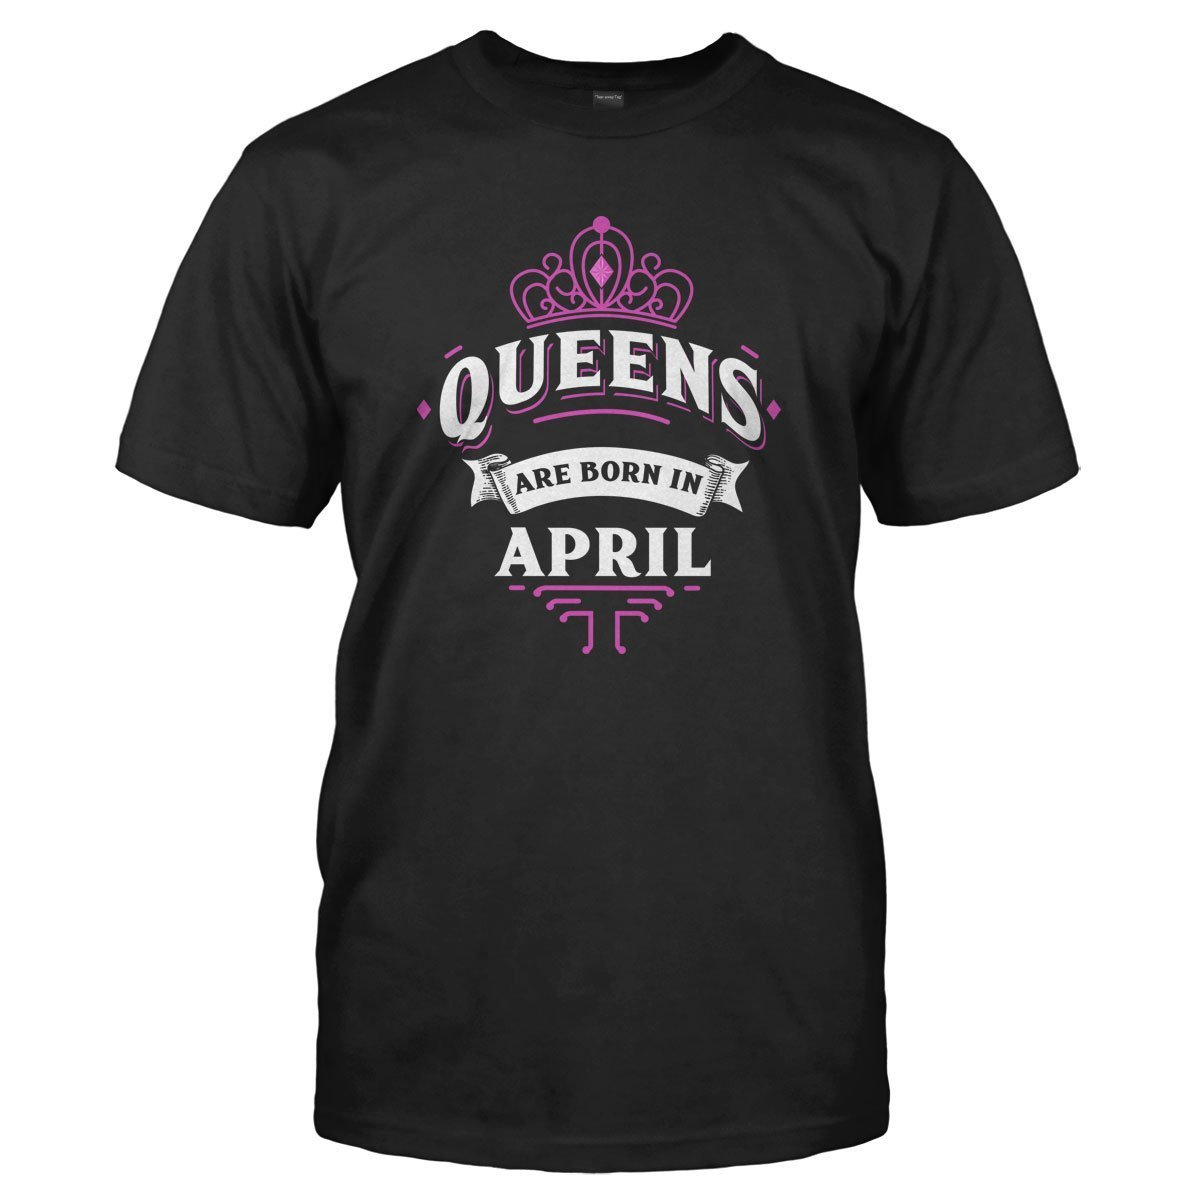 35bef3cf Queens Are Born In April - T Shirt - I Love Apparel